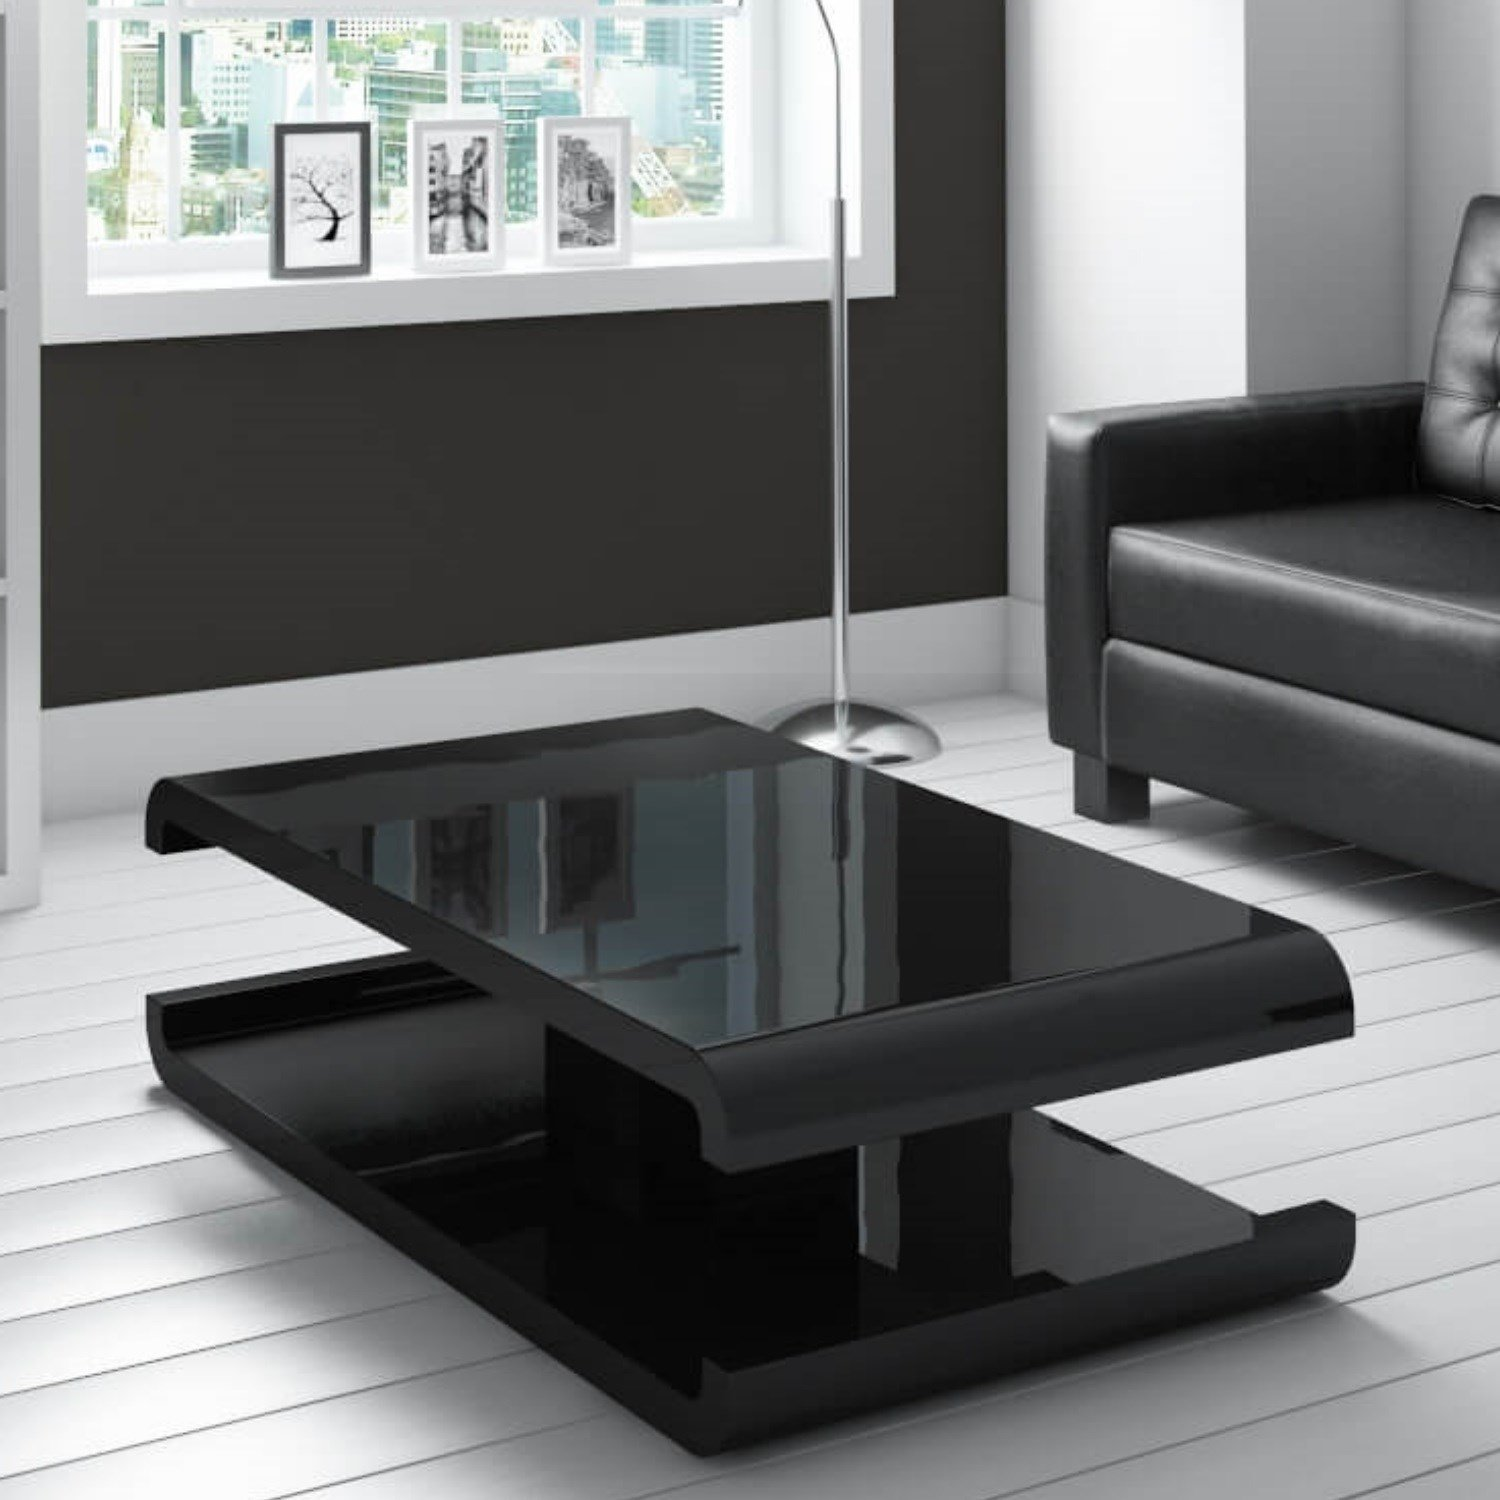 Living Room Furniture: Black Gloss Decoration Solutions That Work